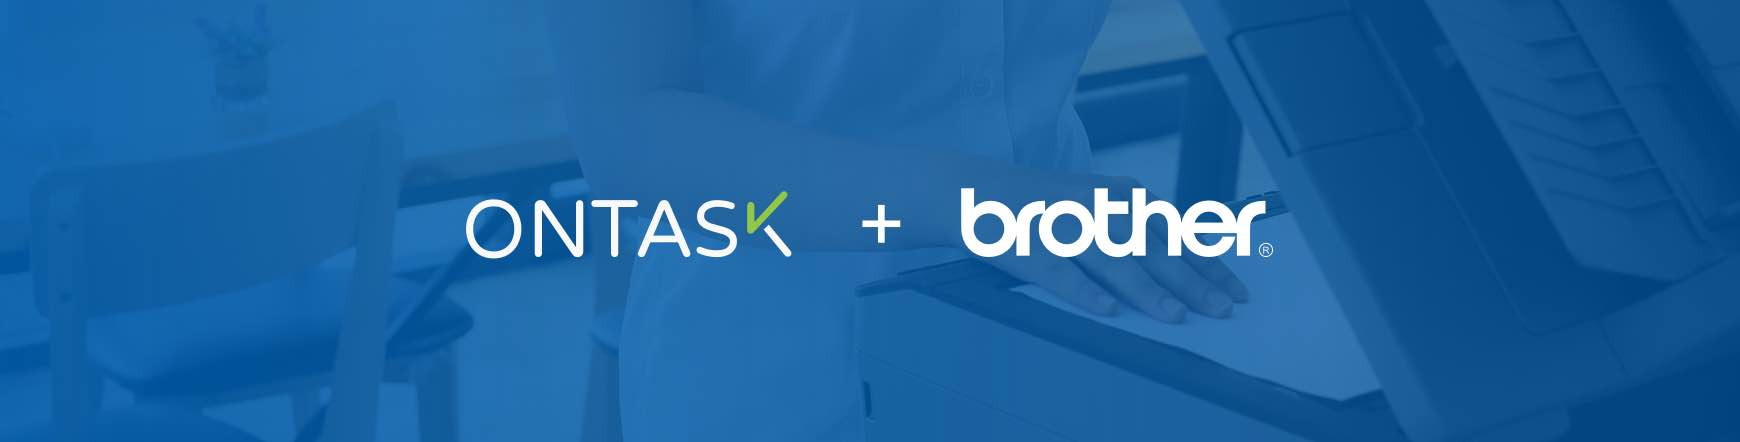 ontask-brother-partnership